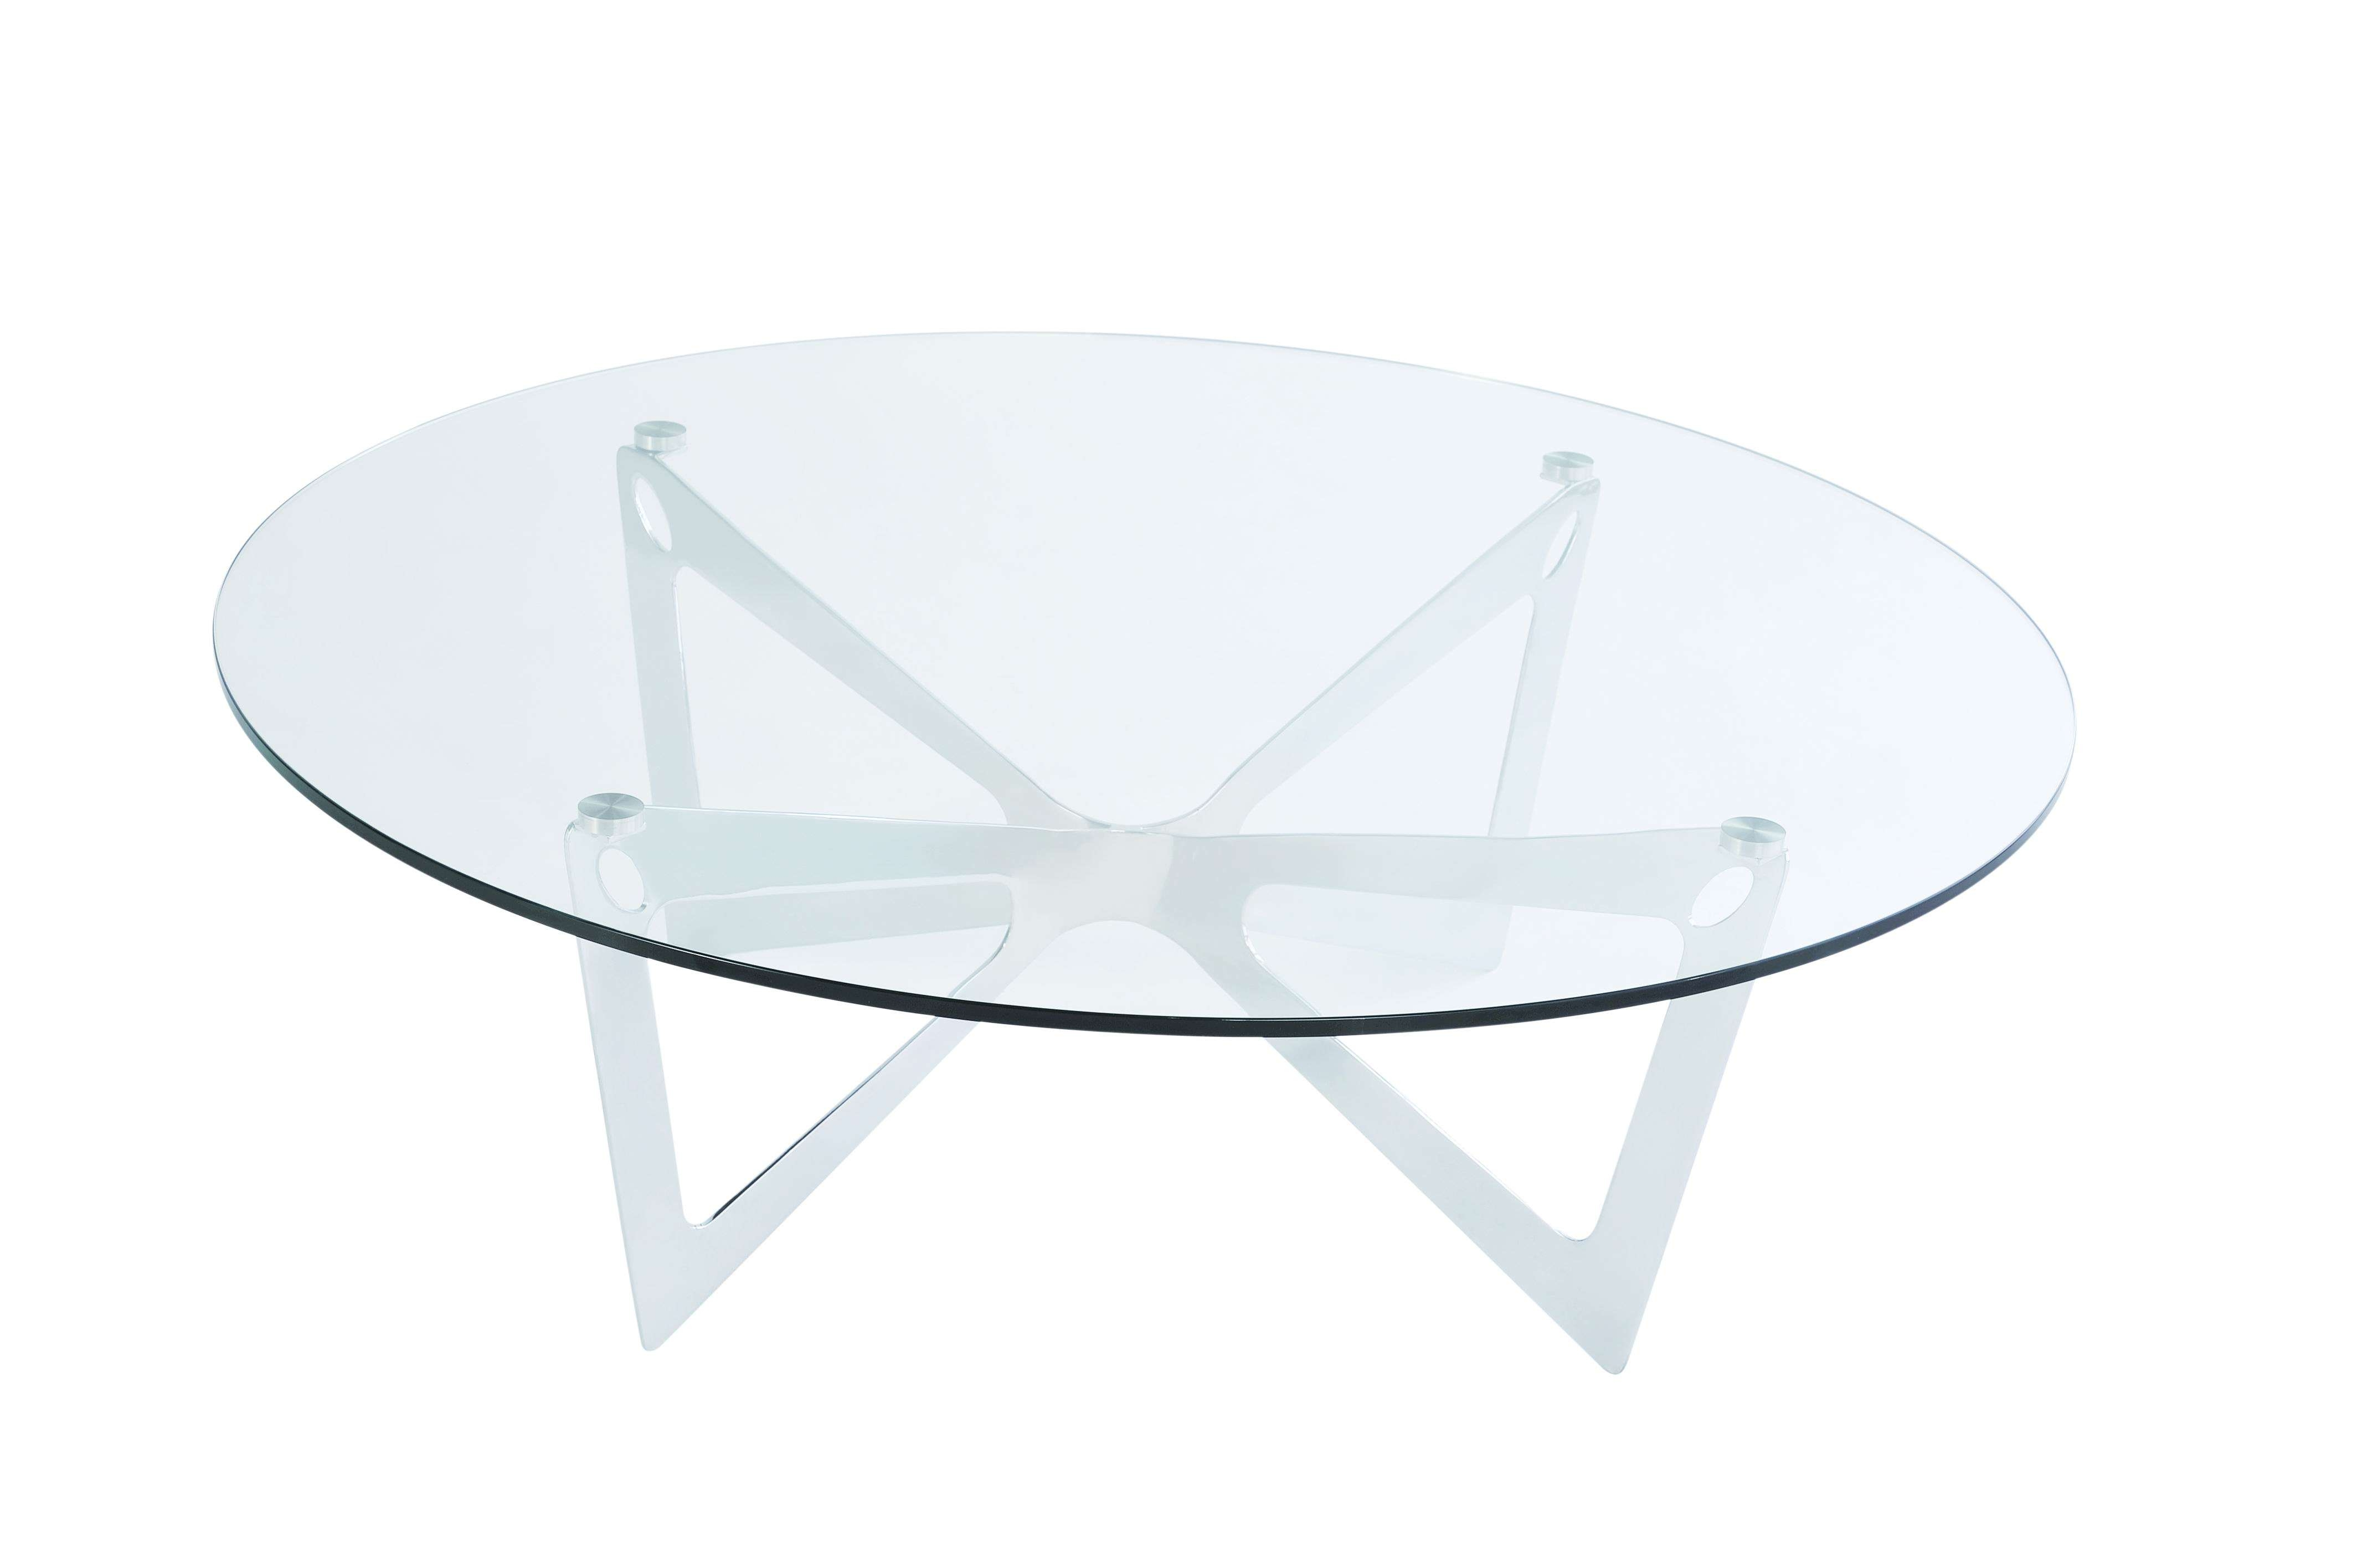 Appealing Round Glass Coffee Table Design – Glass Dining Room Throughout Most Popular Wayfair Glass Coffee Tables (View 17 of 20)